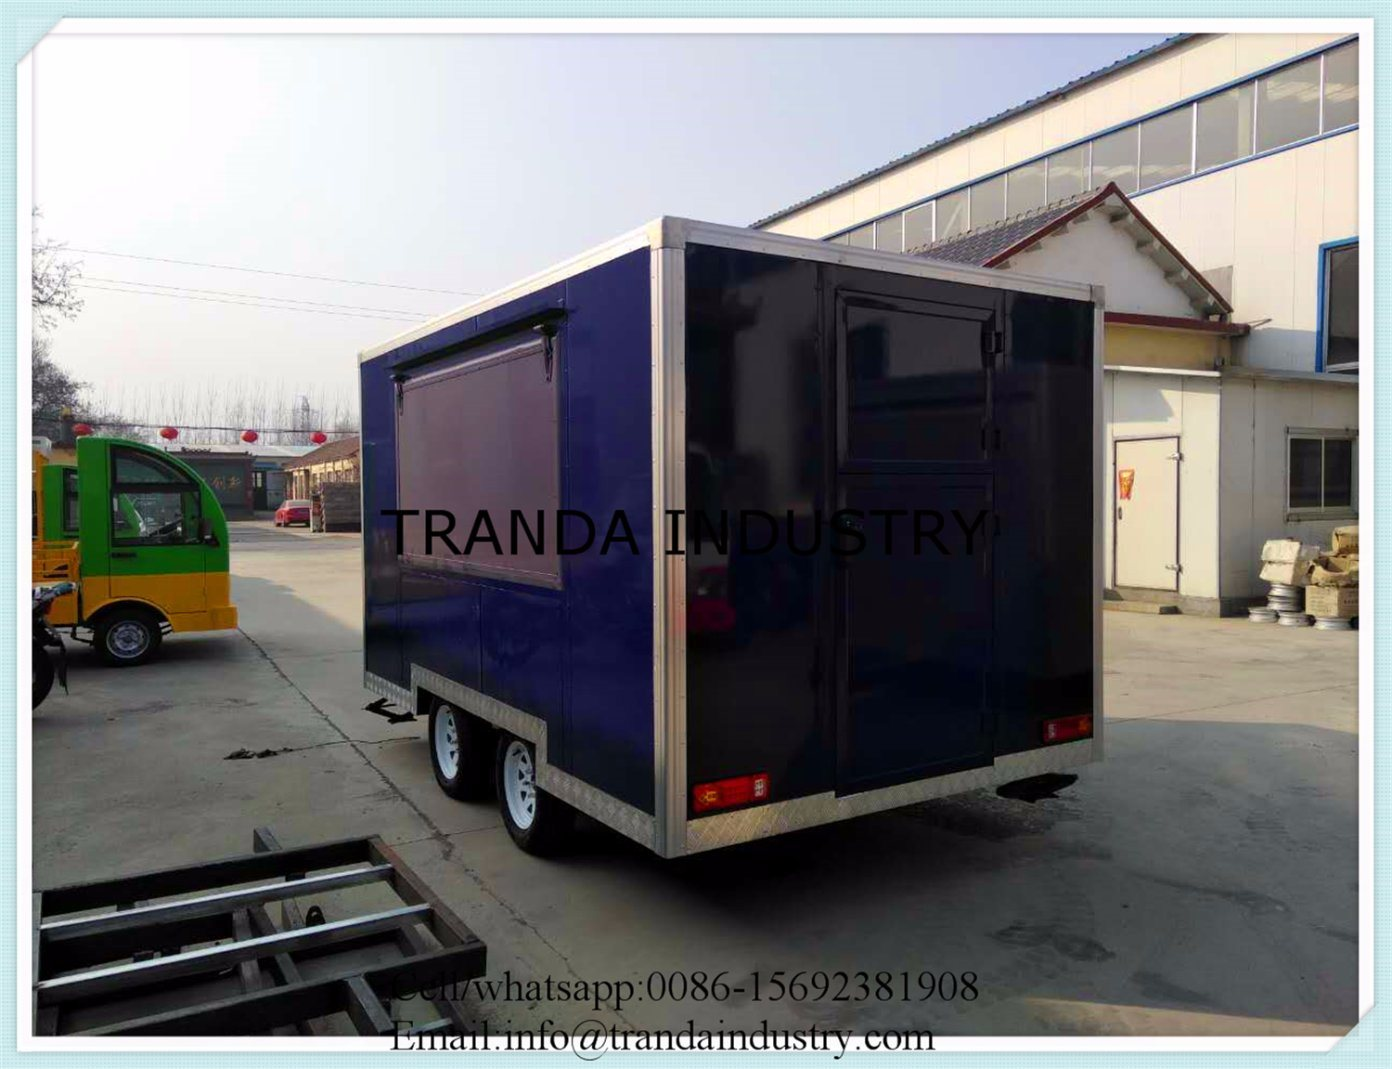 Luxury Food Trailer with High Quality Chassis